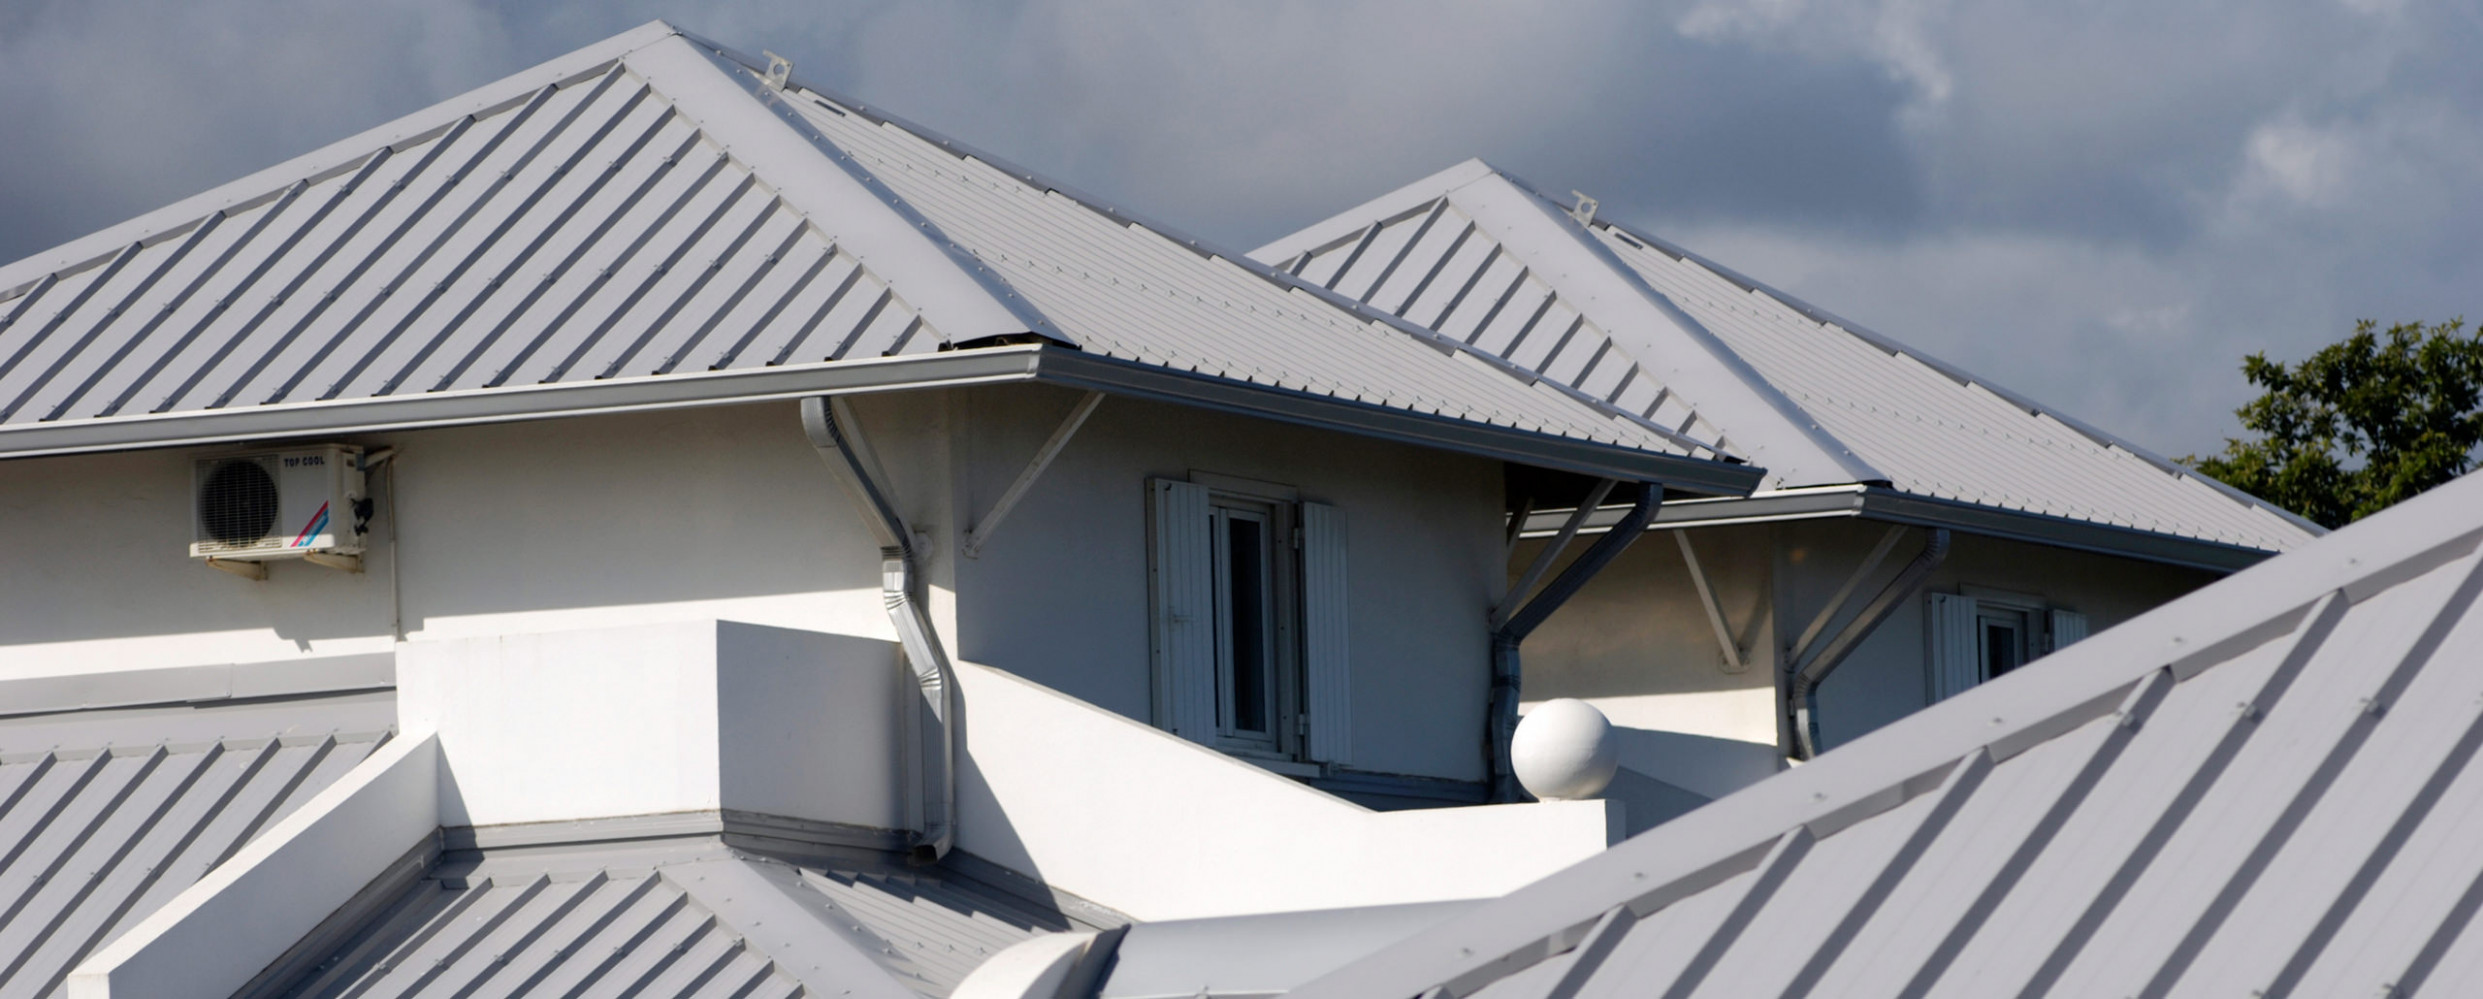 Zammit Roofing   Carports Metal Roofing Supplies Carport Roof Cladding